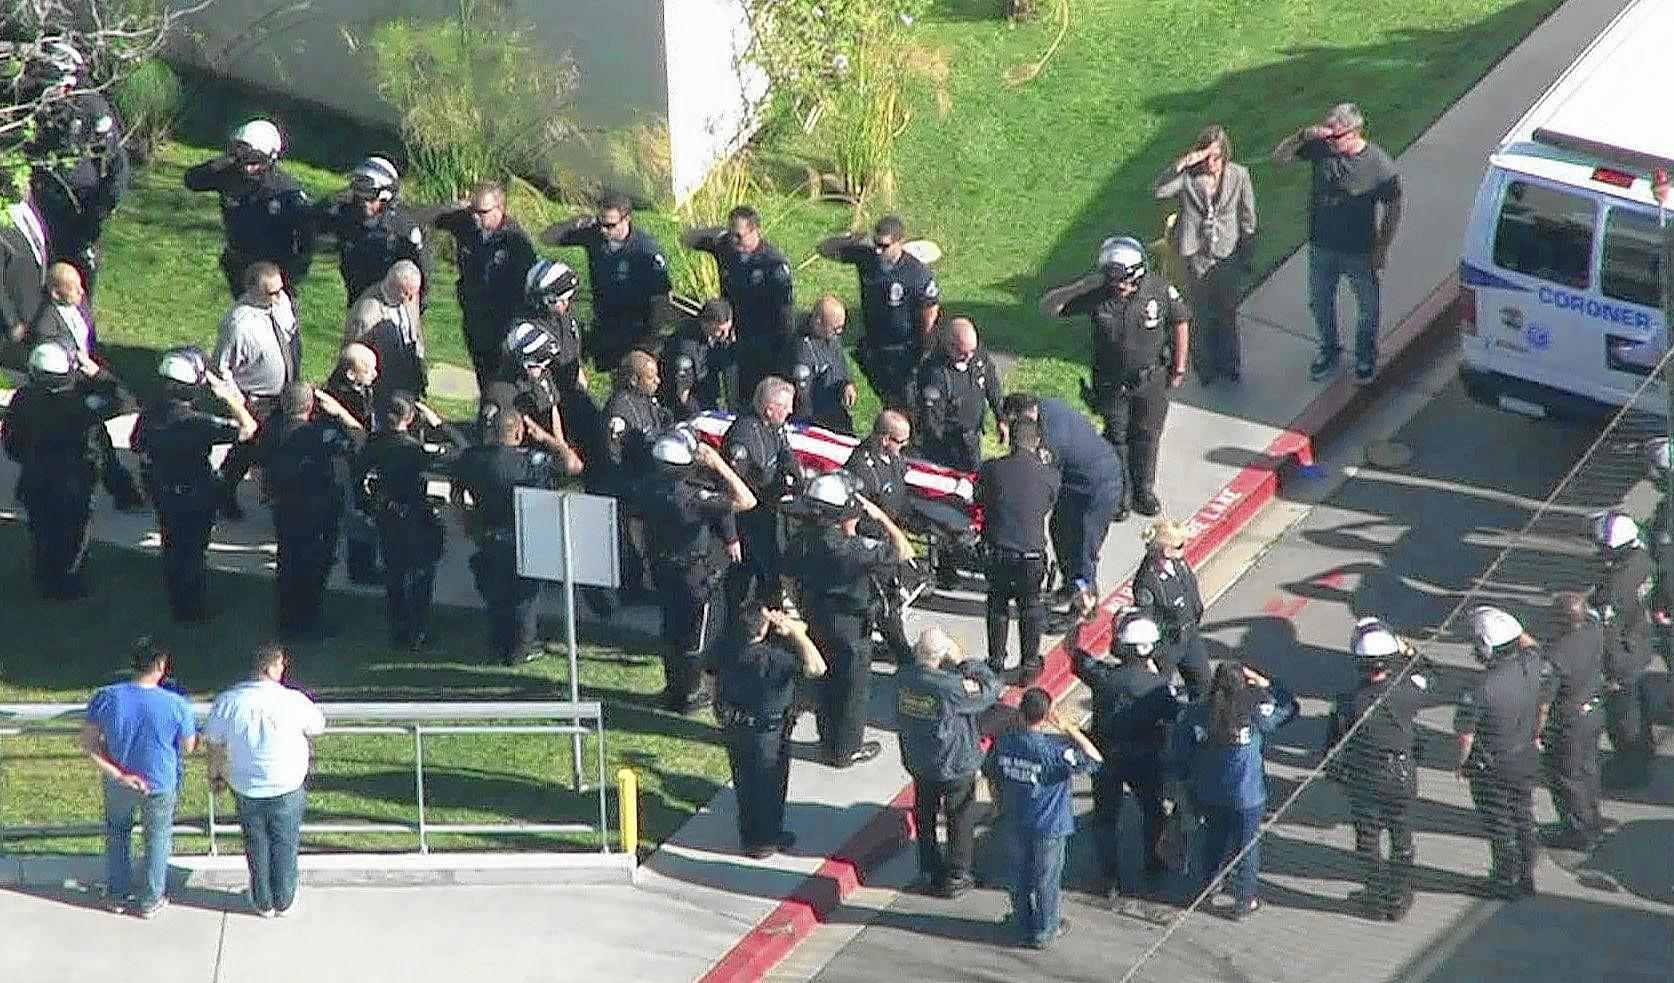 LAPD officers salute as the body of Officer Chris Cortijo passes by before heading to the L.A. County morgue with a police escort.